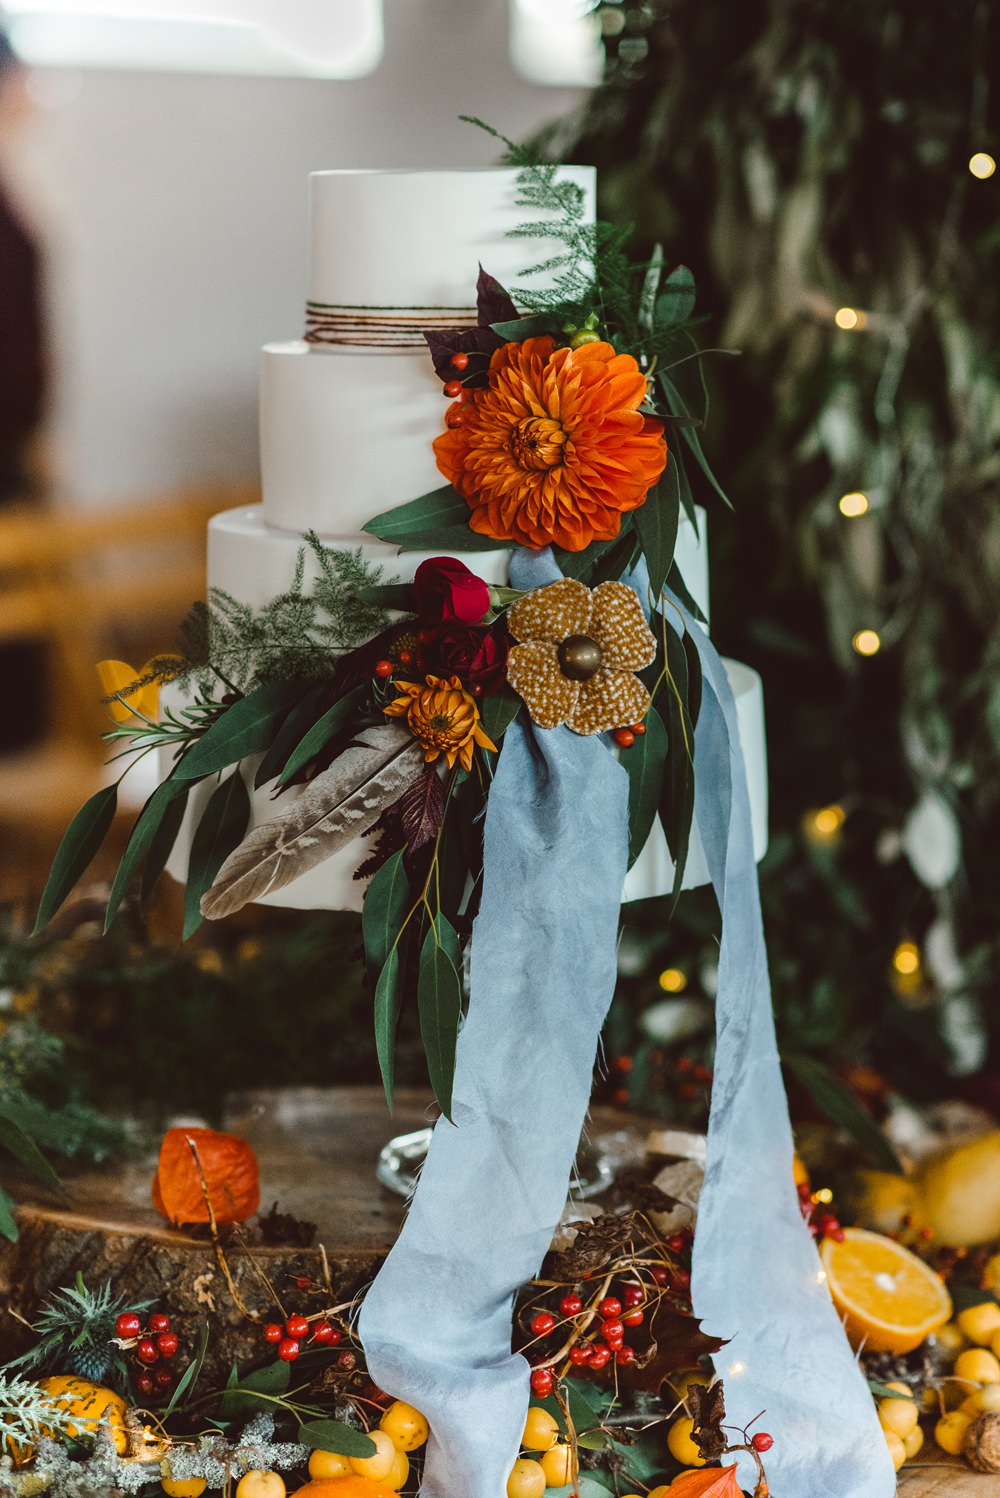 Cake Tier Ribbon Flowers Feathers Table Rustic Christmas Wedding Ideas Dhw Photography